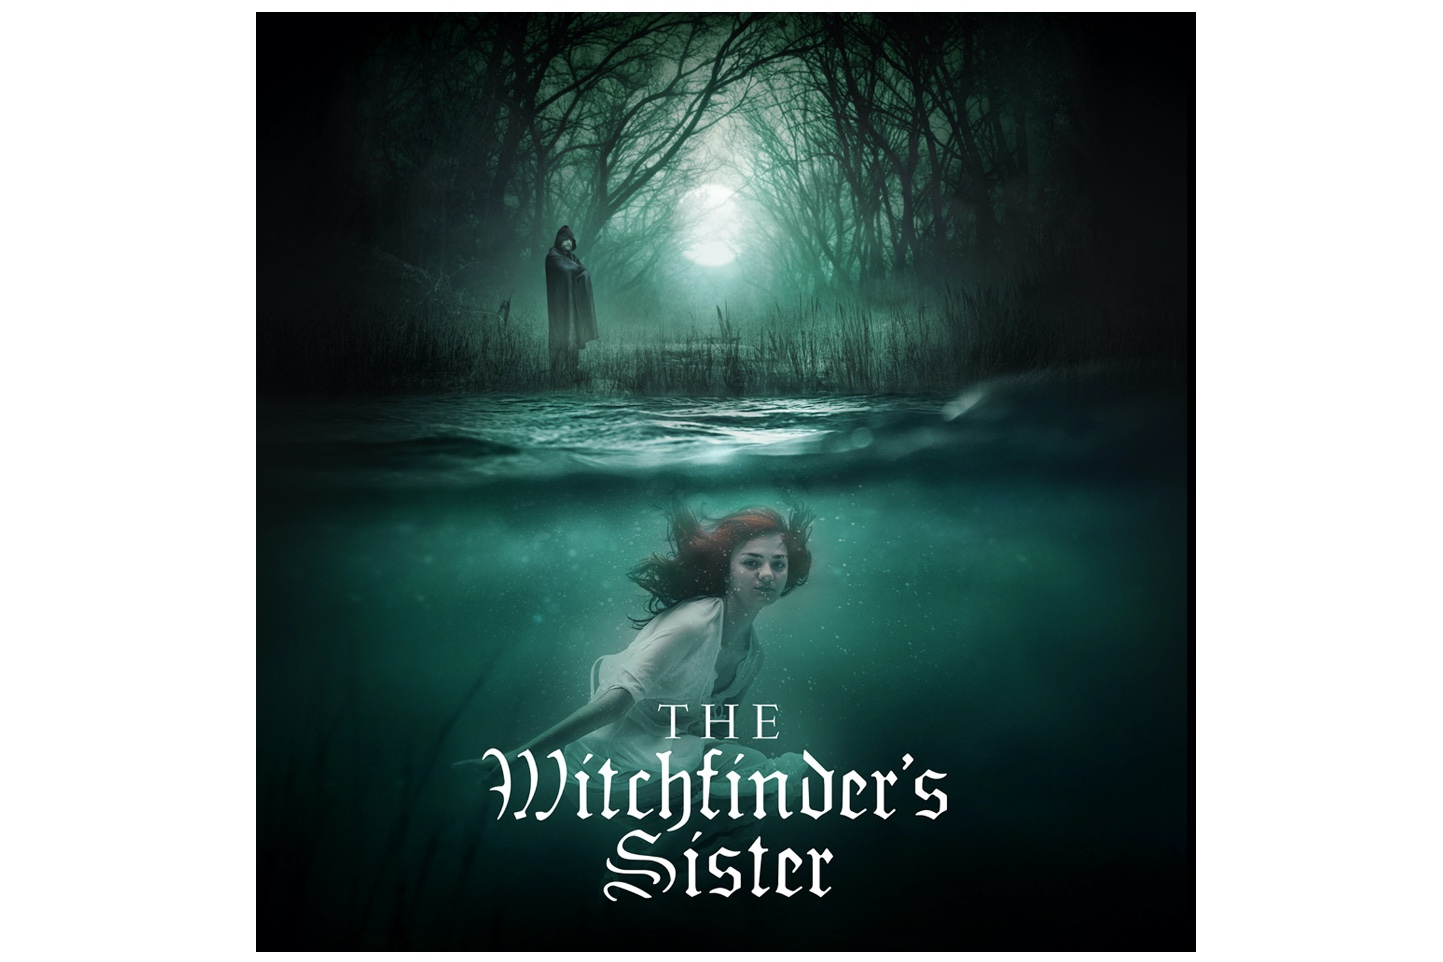 The Witchfinders Sister